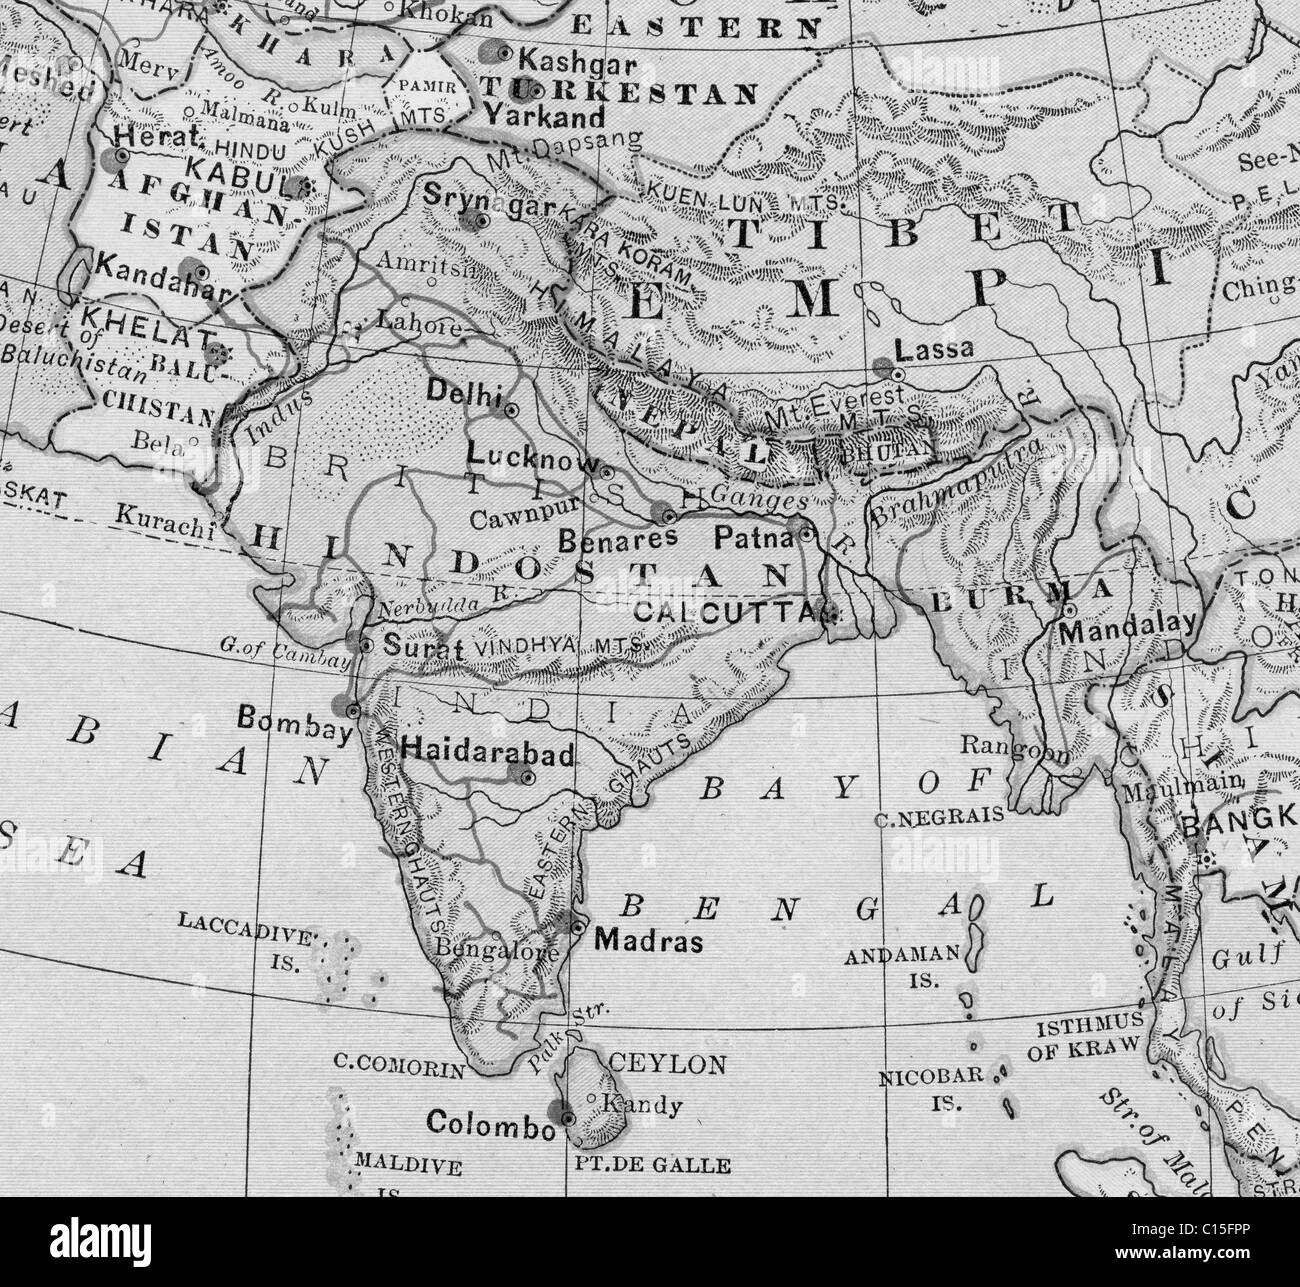 Old map of india stock photos old map of india stock images alamy old map of india from original geography textbook 1884 stock image gumiabroncs